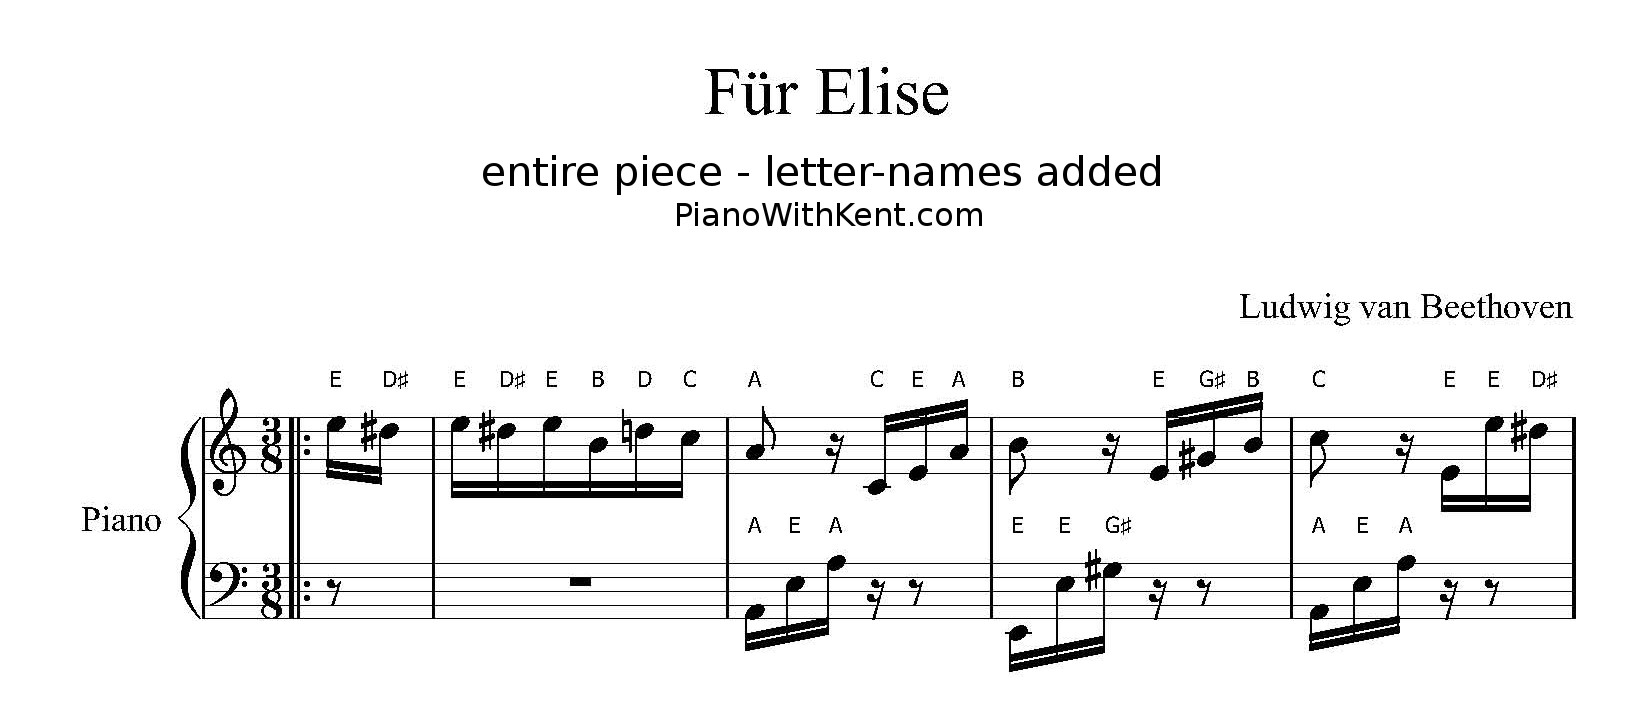 Fur Elise letter-notes sheet music from pianowithkent.com